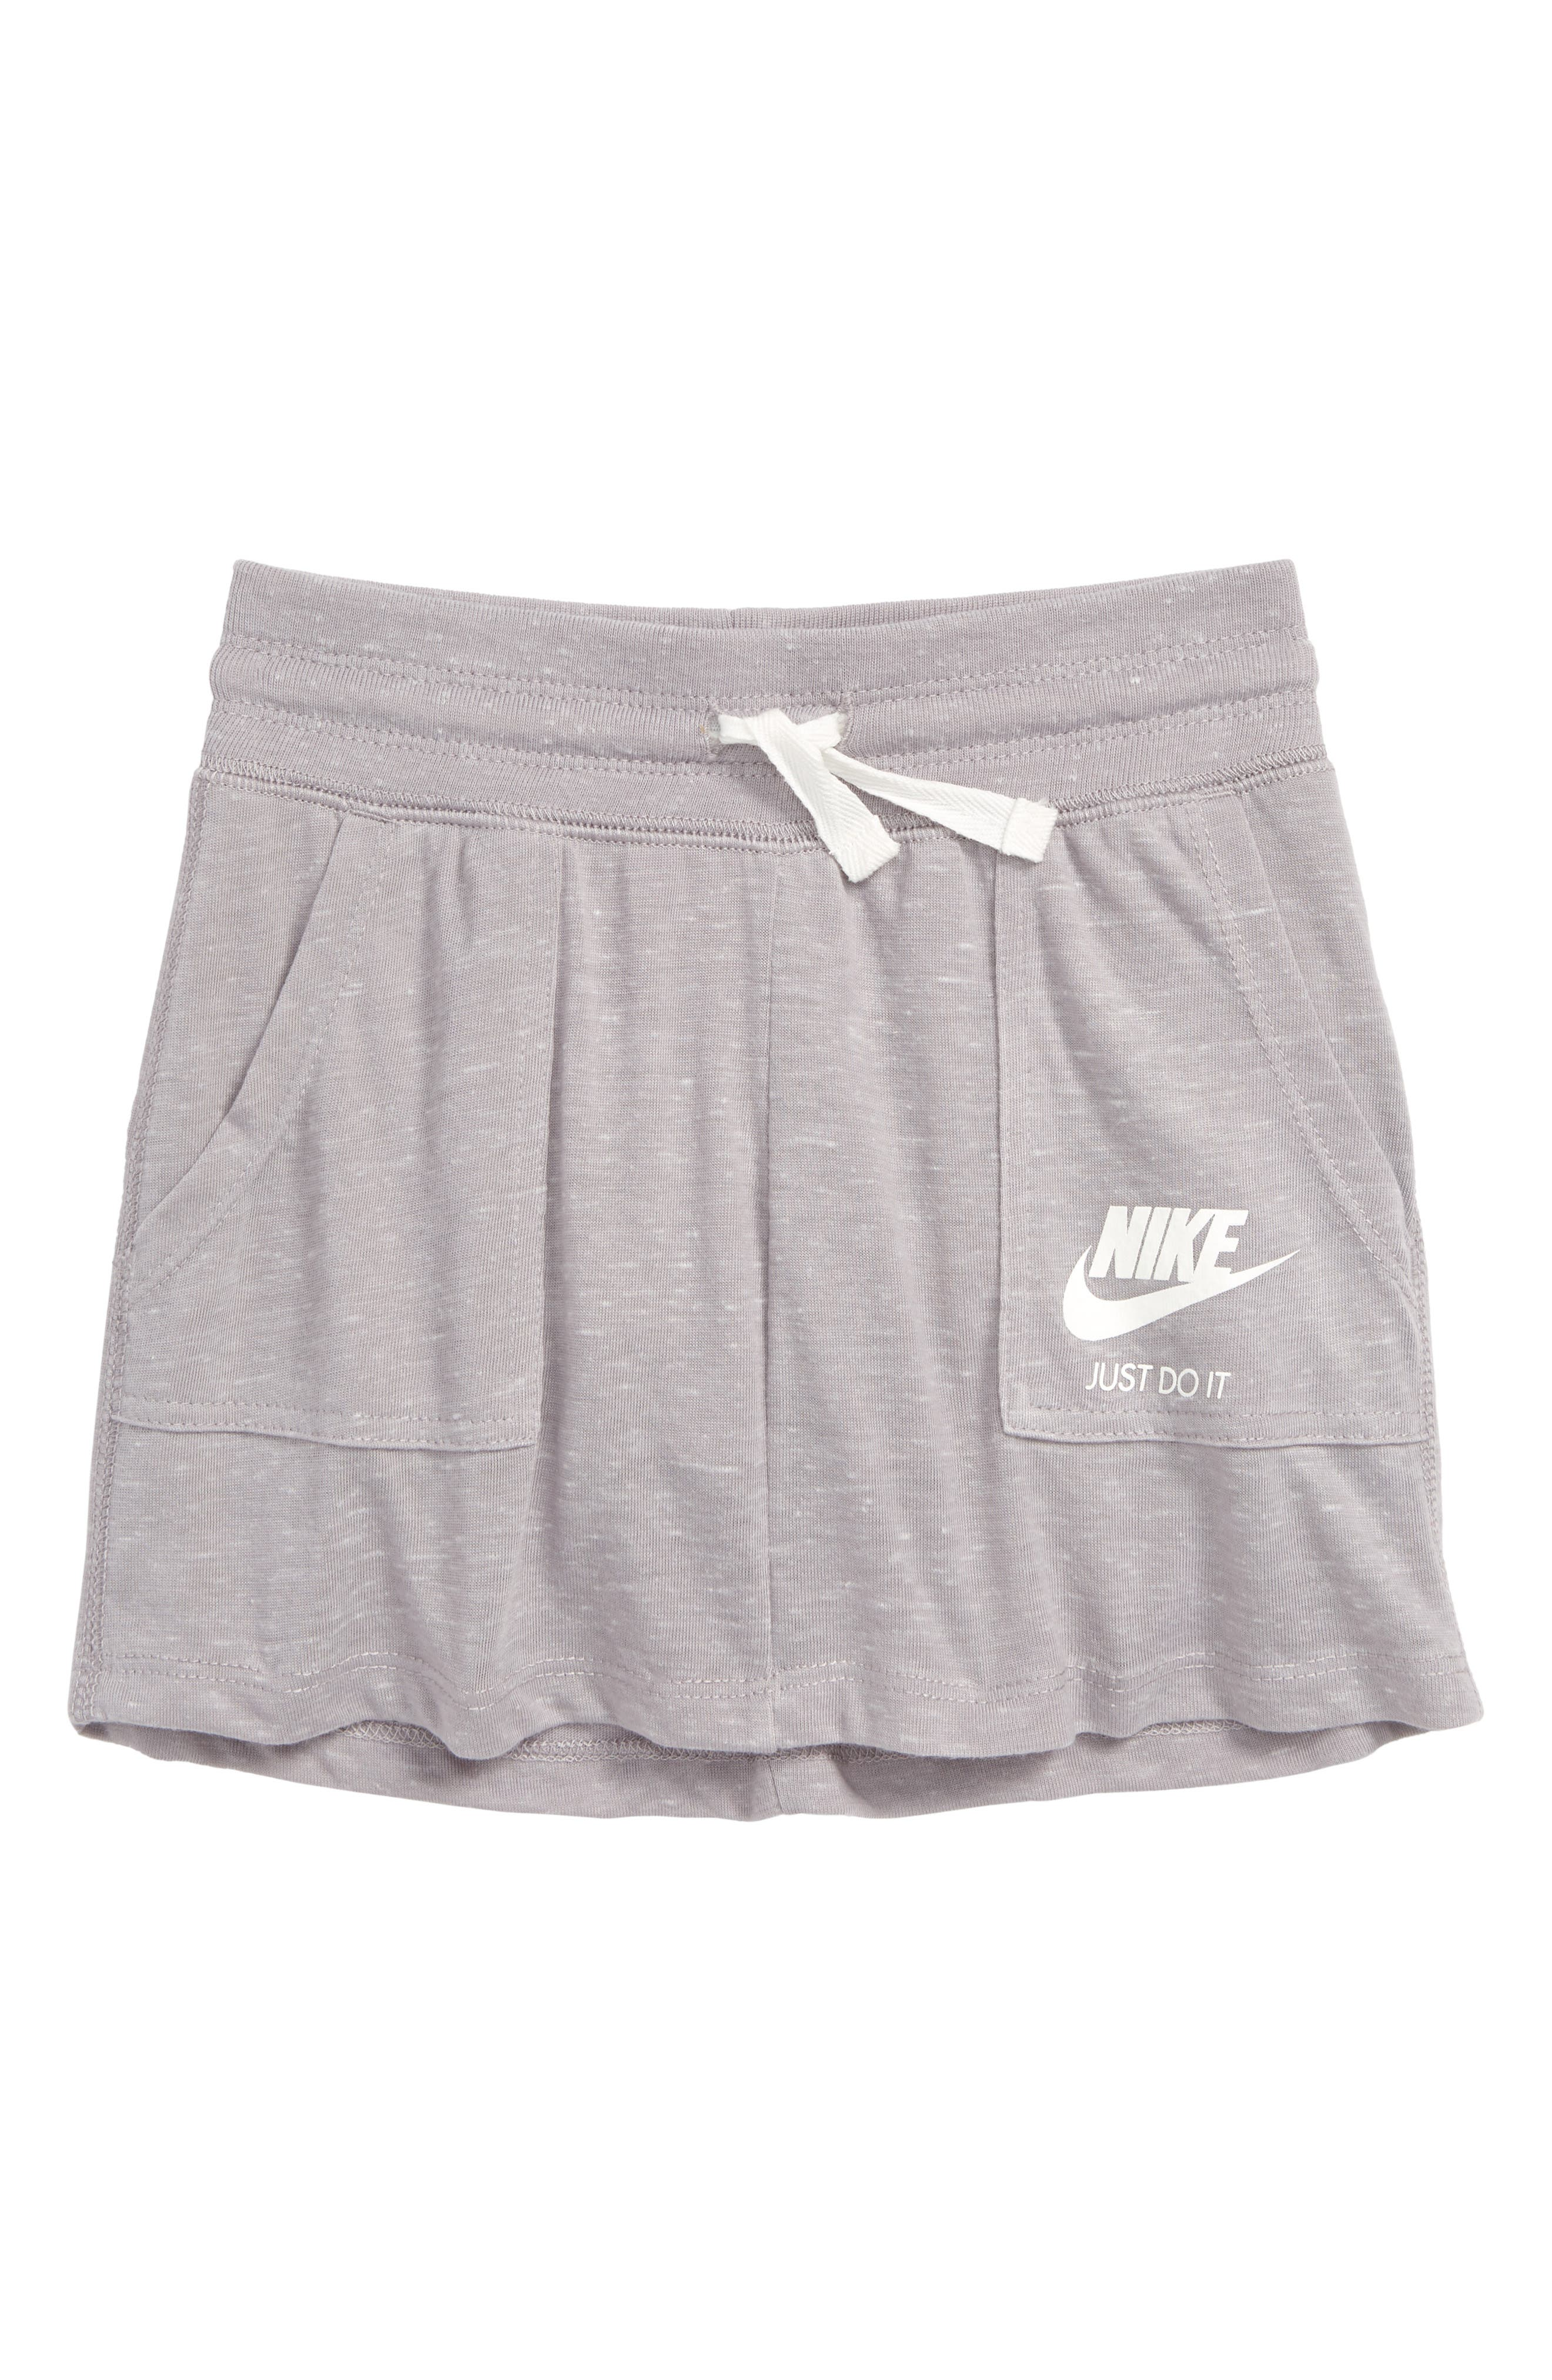 Gym Vintage Sport Skort,                             Main thumbnail 1, color,                             051